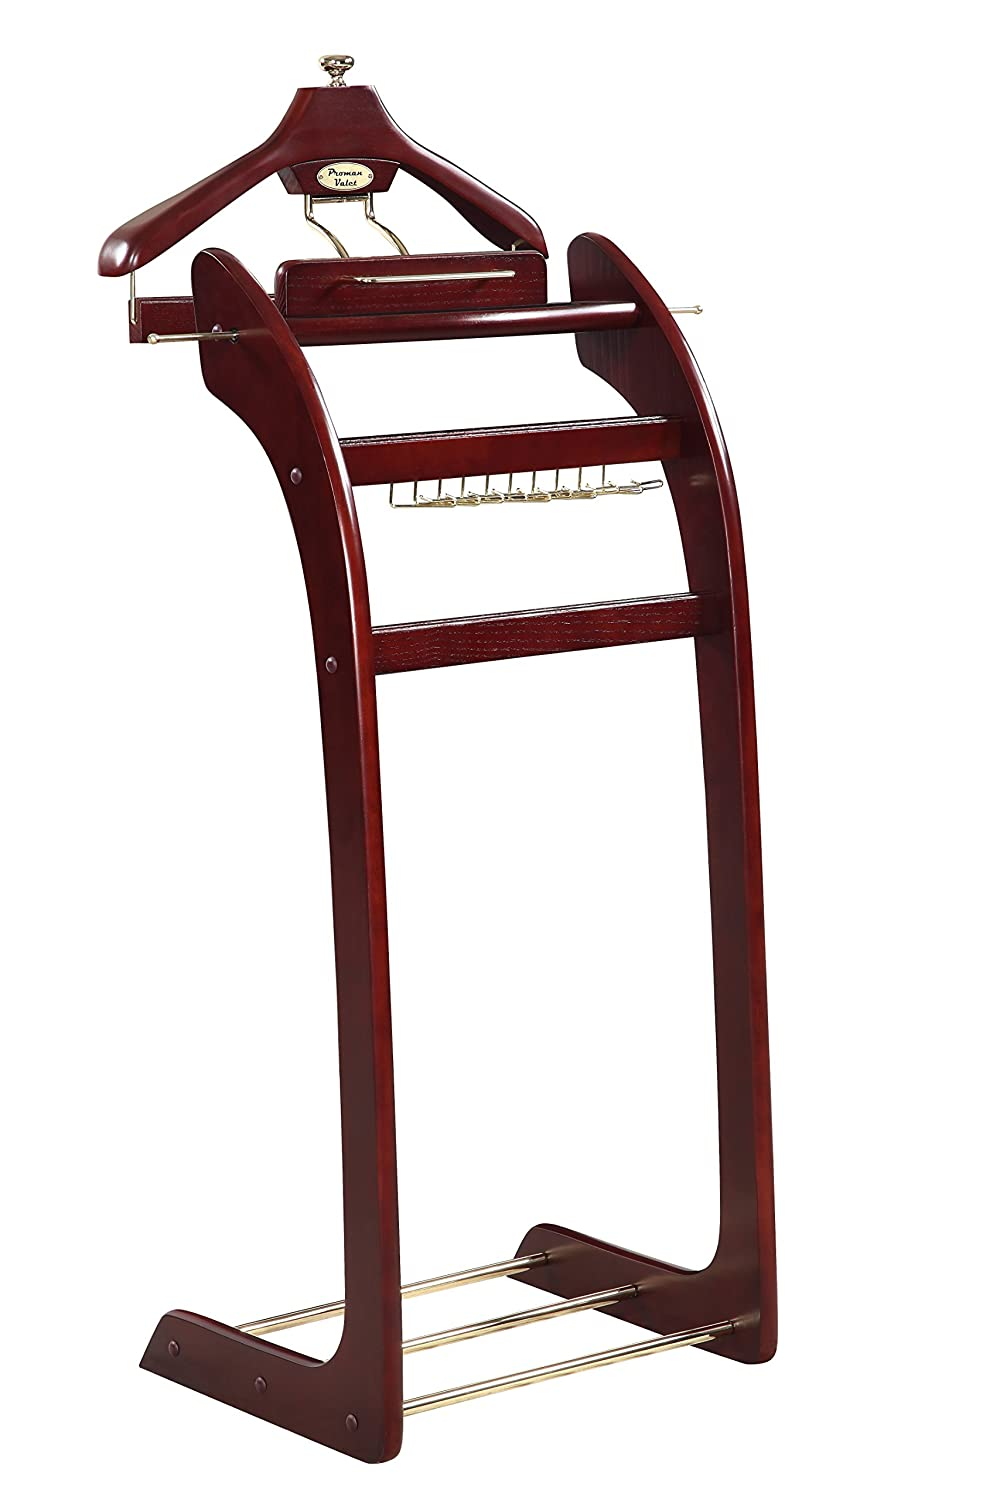 Proman Products Windsor Signature Valet Evergreen Products VL16158